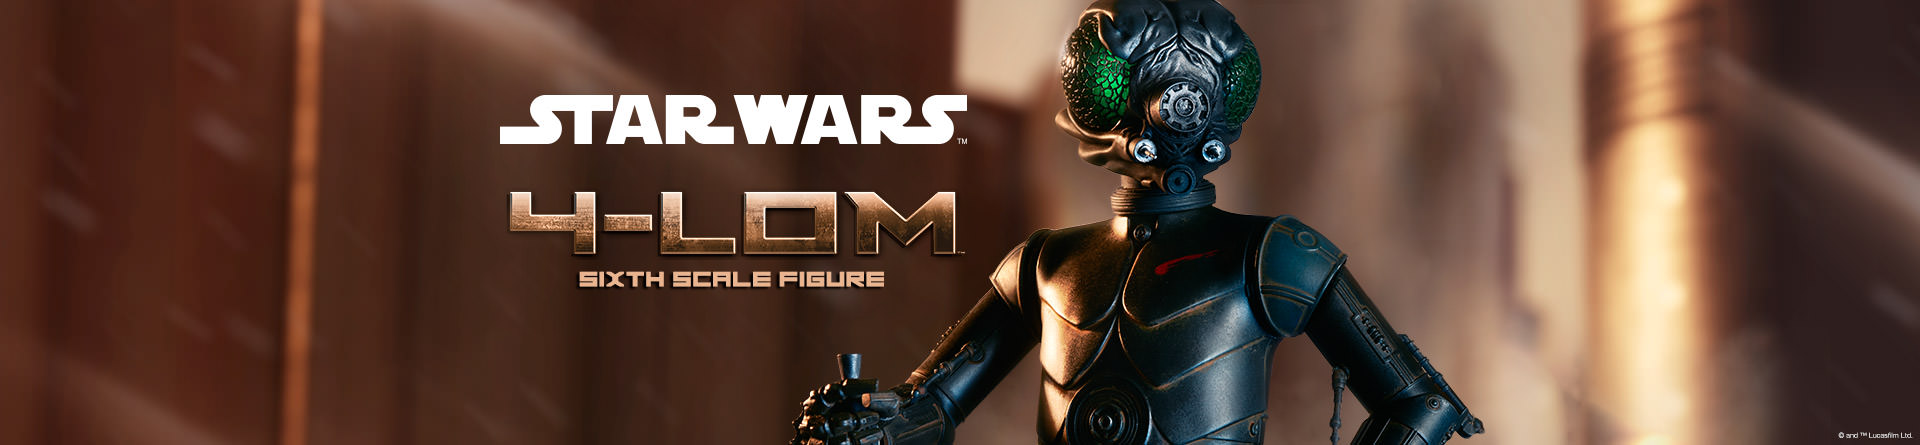 4-LOM Sixth Scale Figure